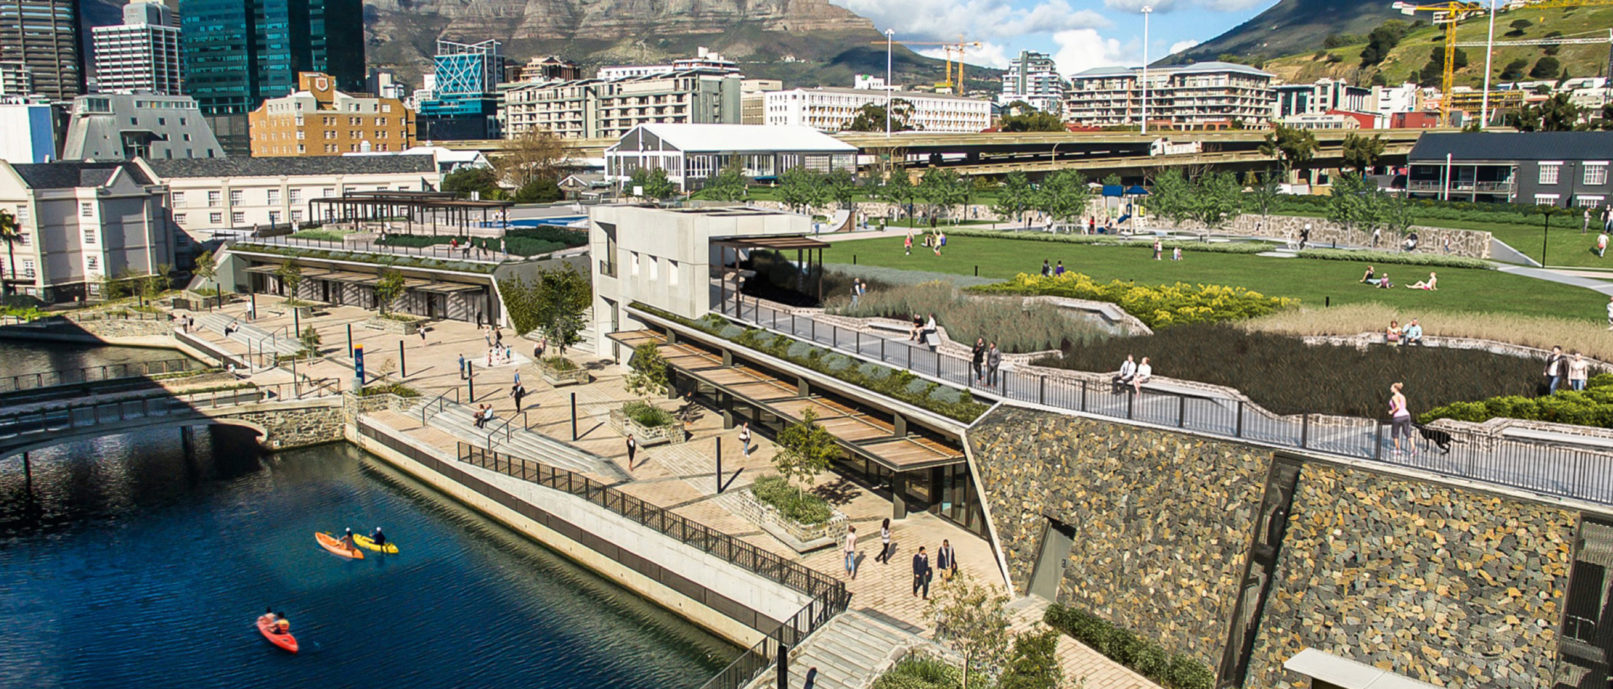 dhk completes urban park in Cape Town that references historic Amsterdam Battery